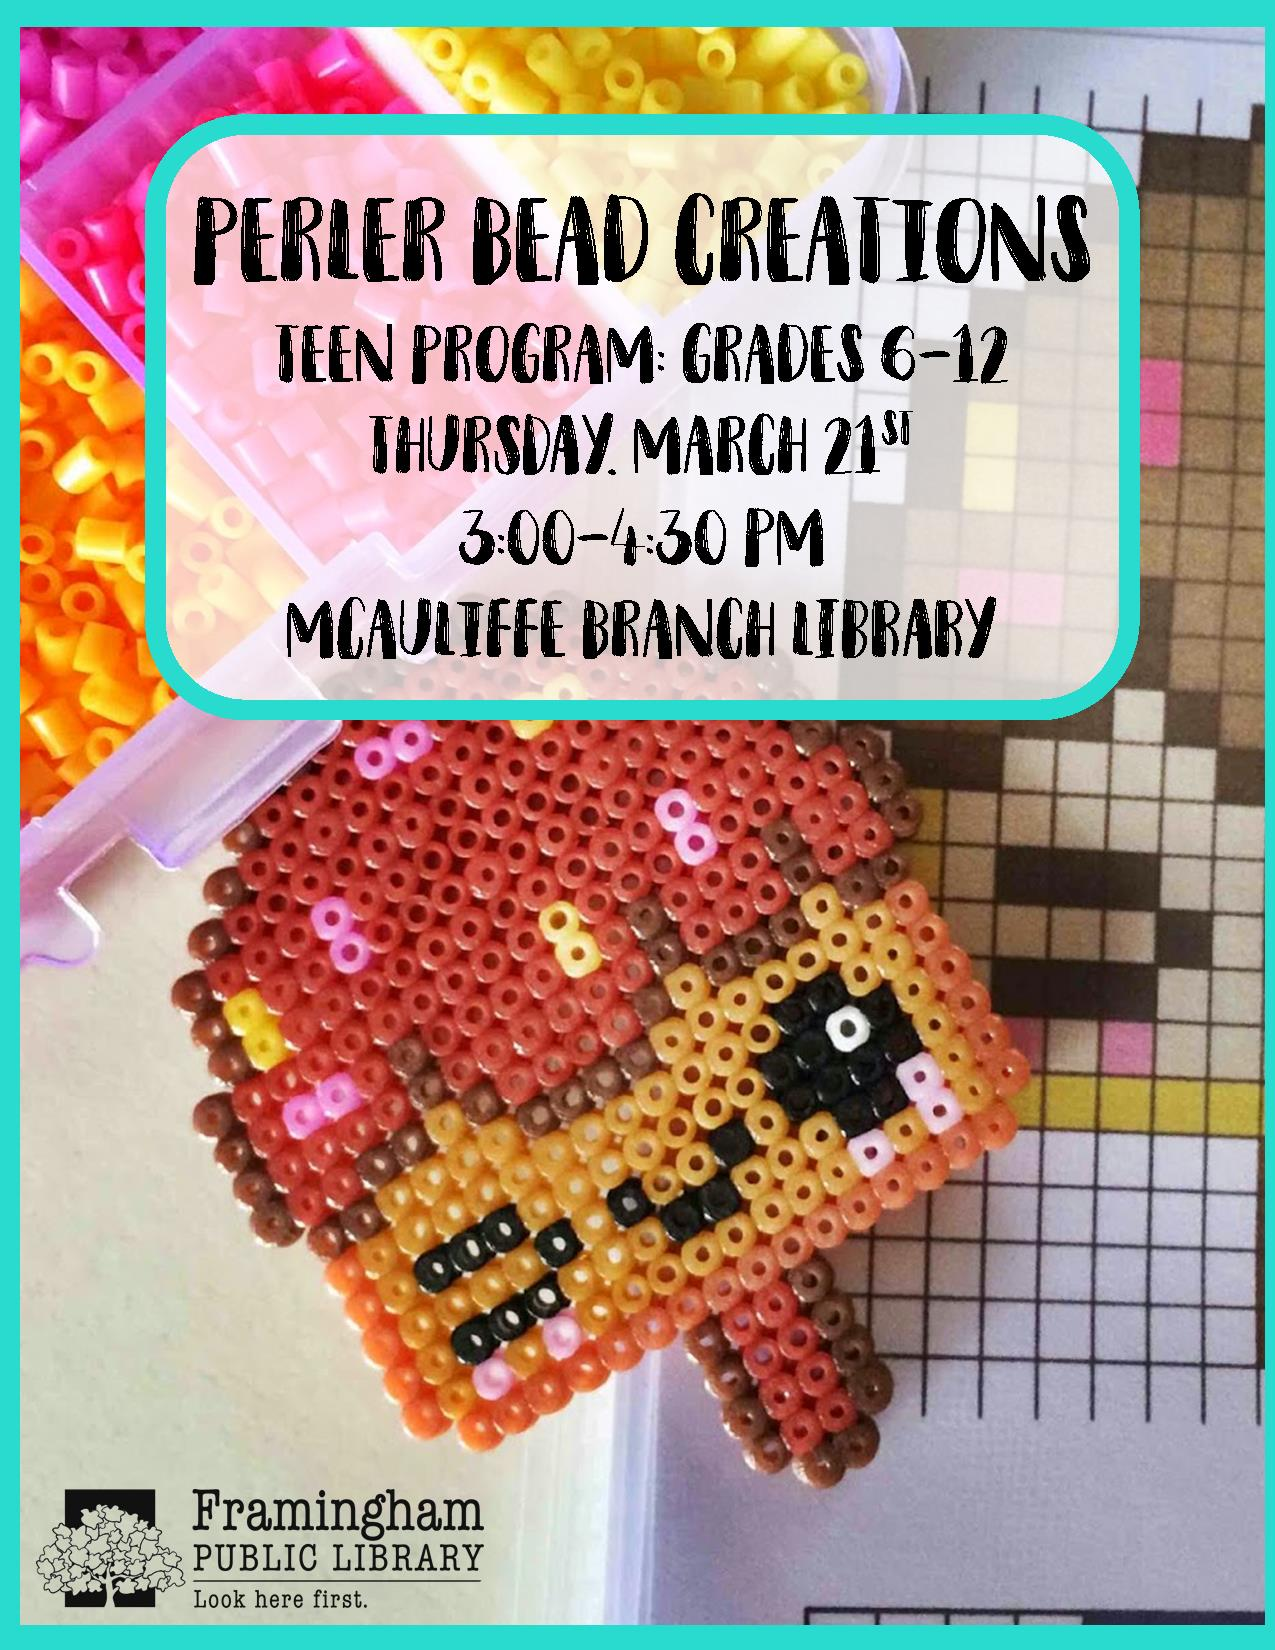 Perler Bead Creations thumbnail Photo